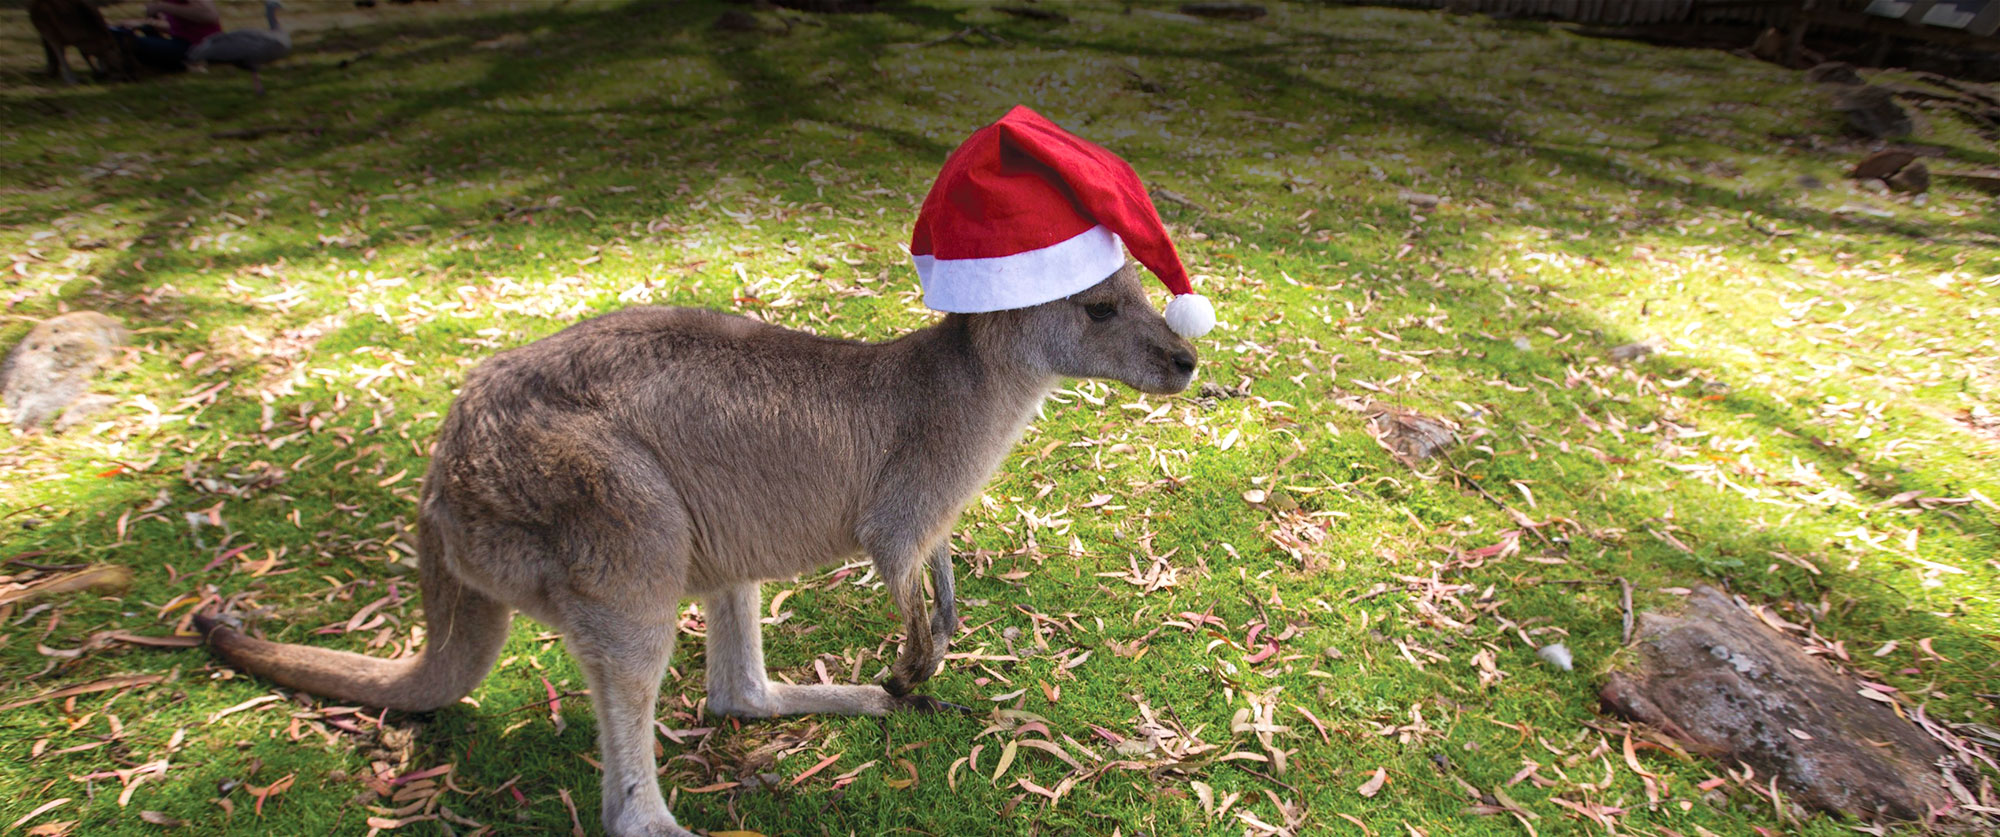 Merry Christmas and Happy Holidays from Down Under Endeavours! - Kangaroo with Santa Hat